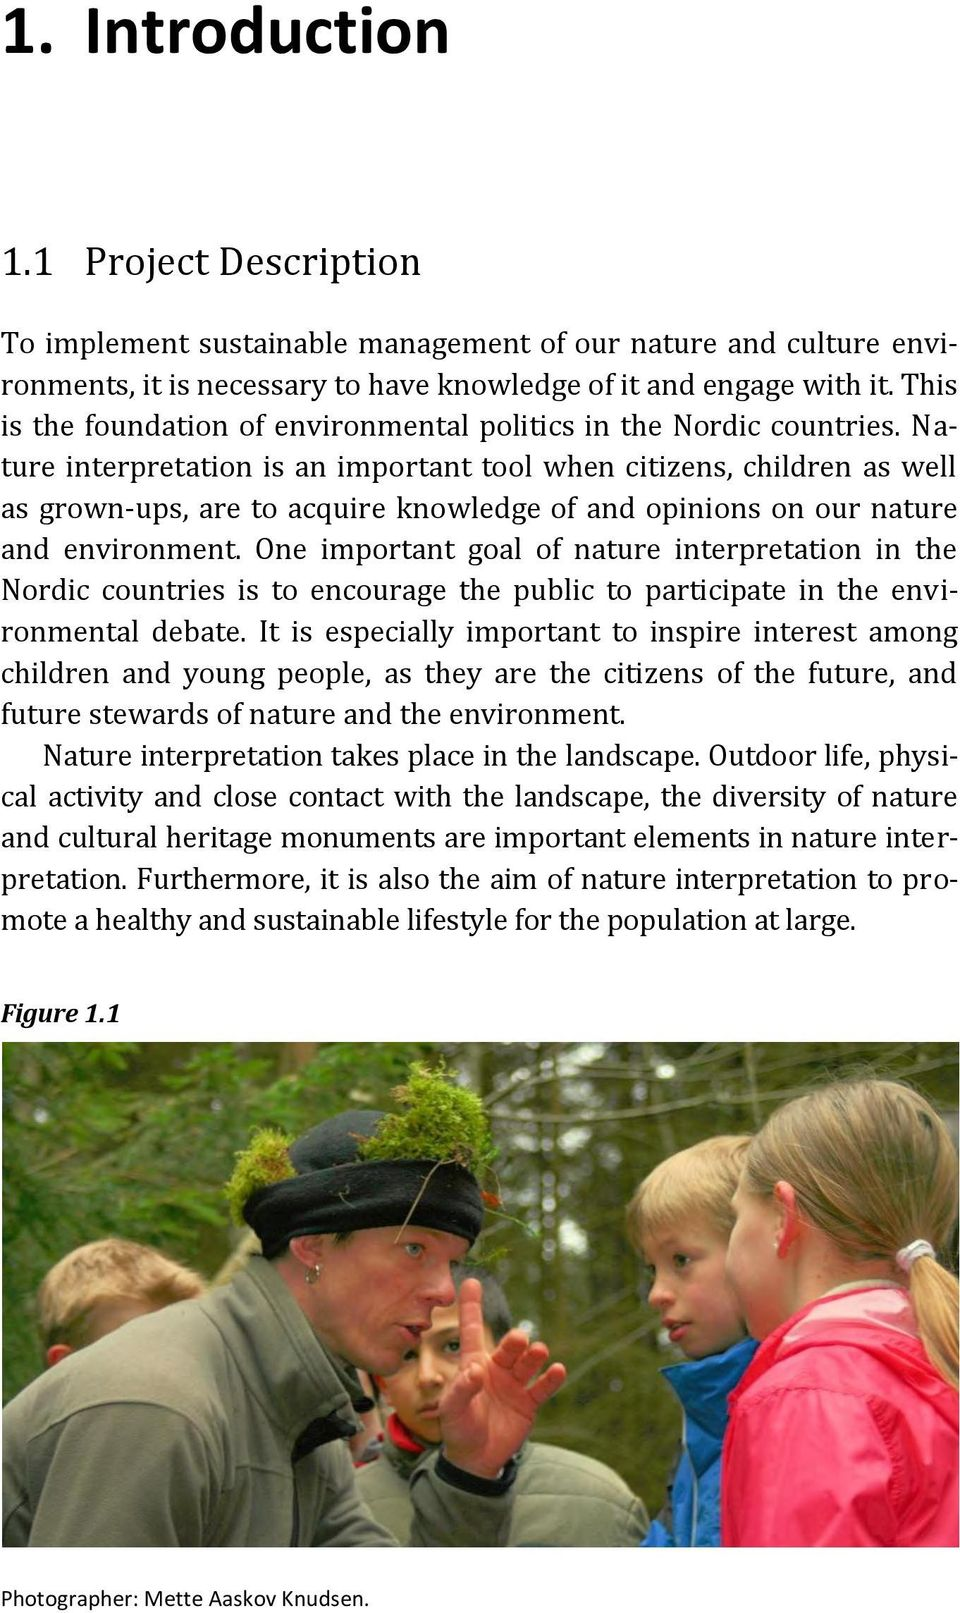 Nature interpretation is an important tool when citizens, children as well as grown-ups, are to acquire knowledge of and opinions on our nature and environment.